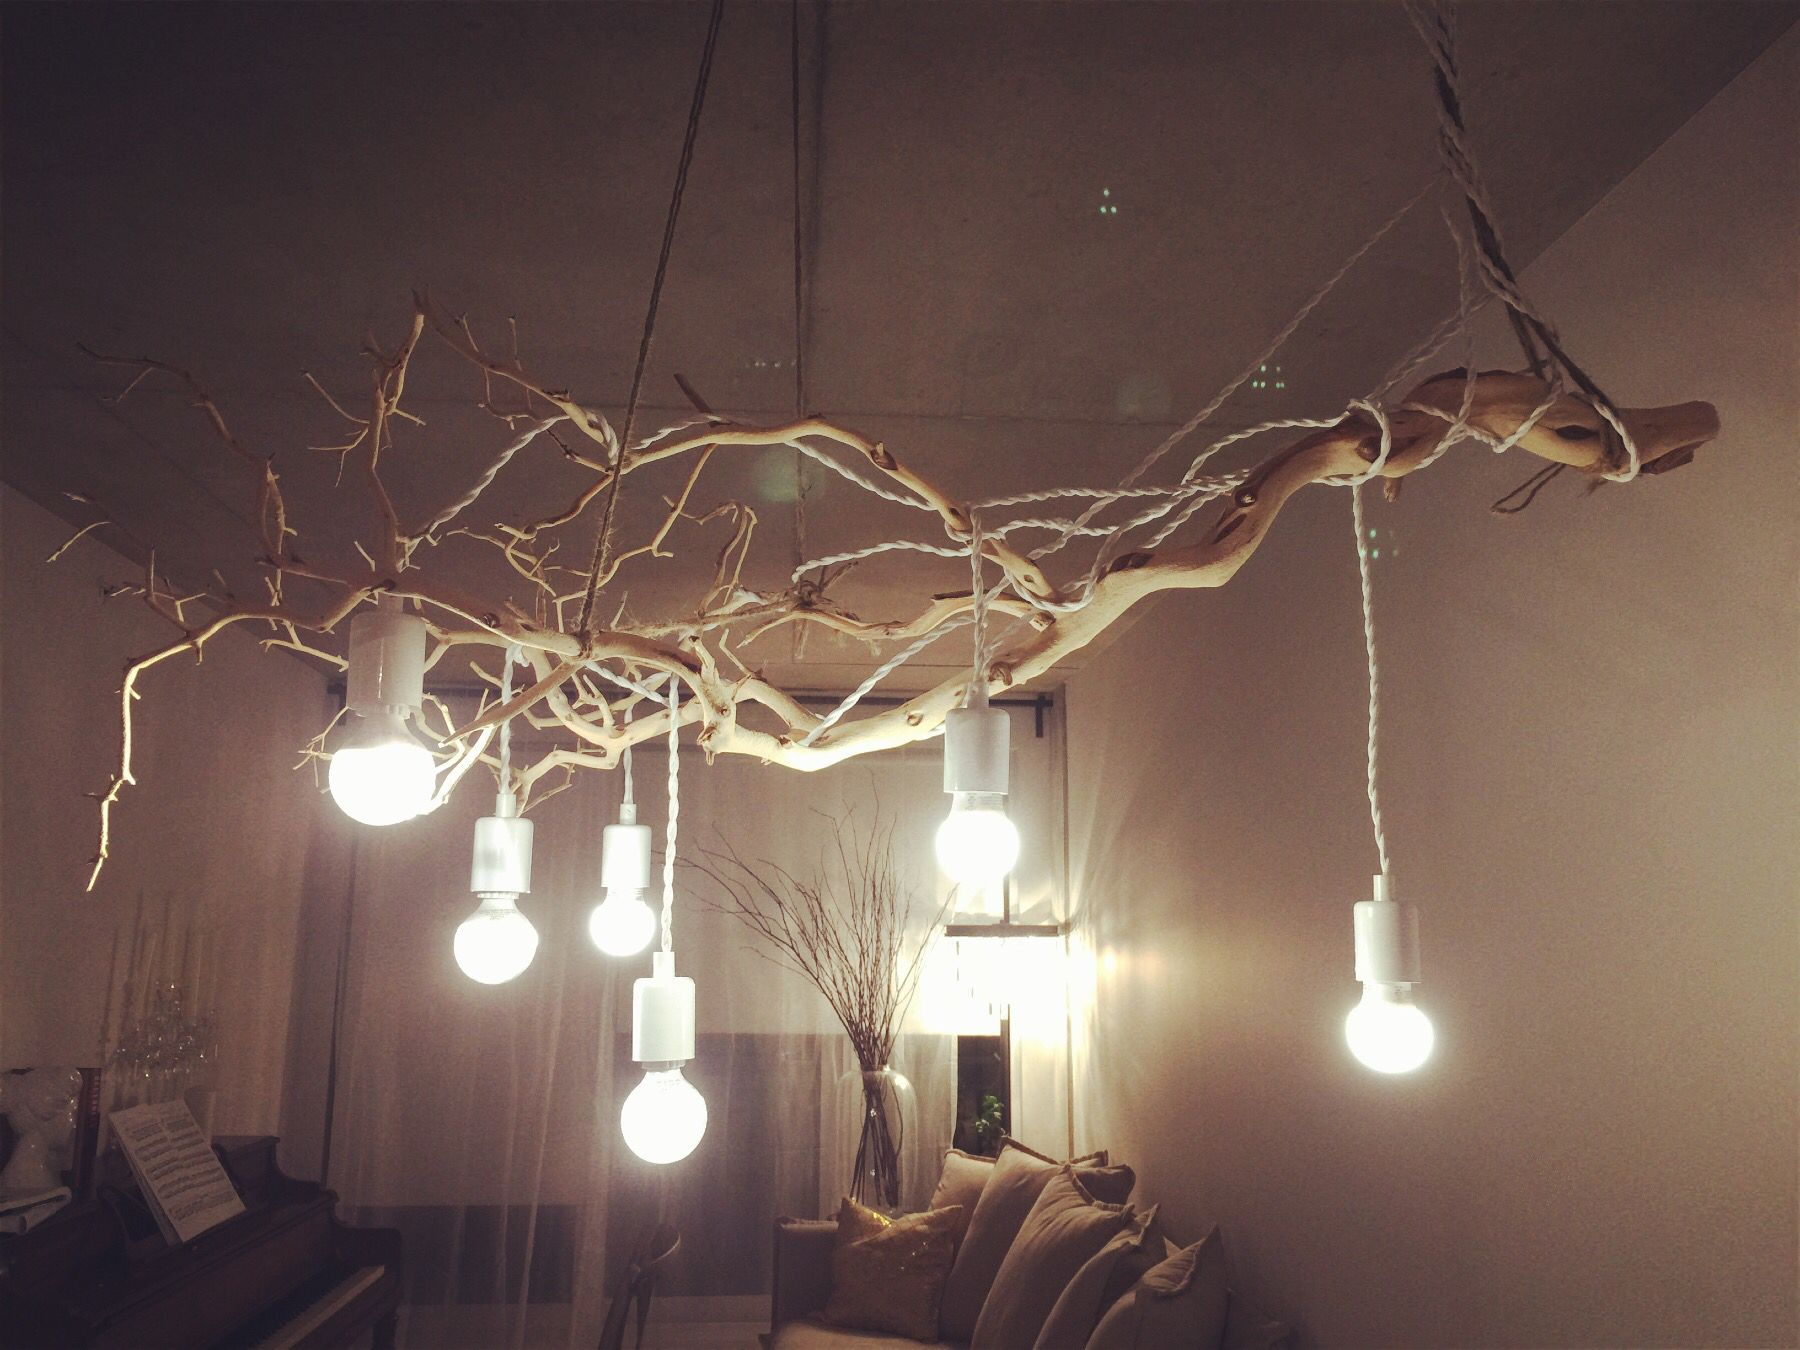 My Favourite Diy Branch Chandelier Made By Just Branches